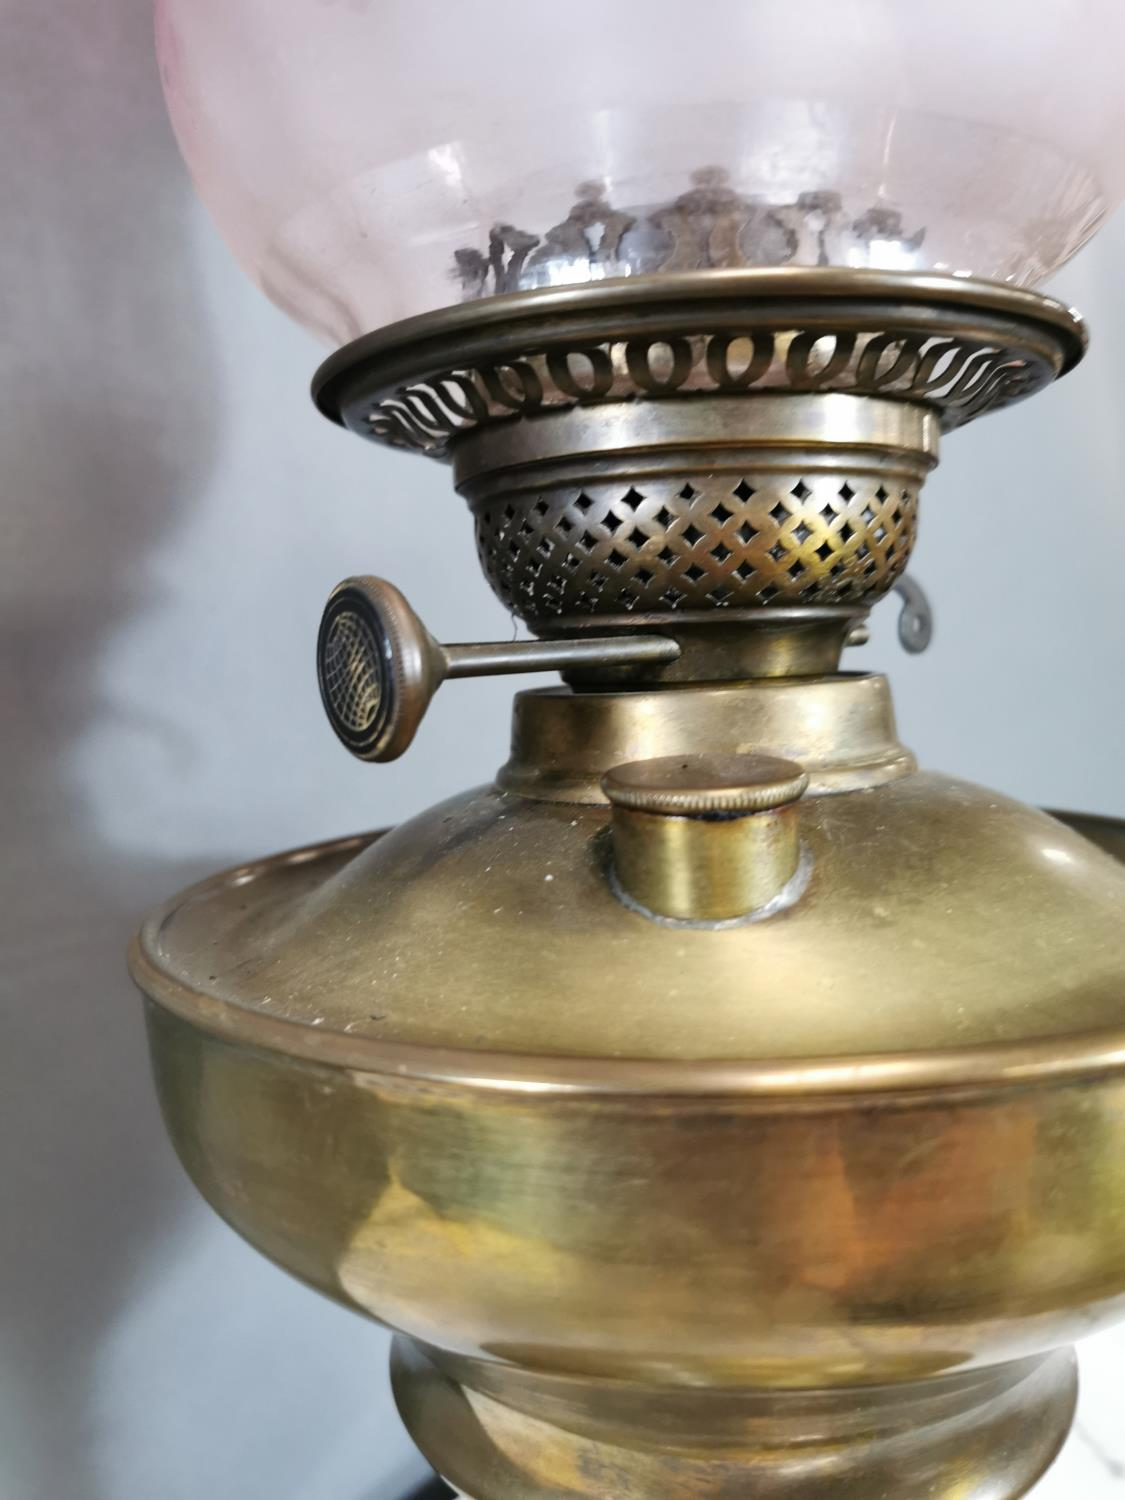 19th. C. table oil lamp - Image 3 of 3